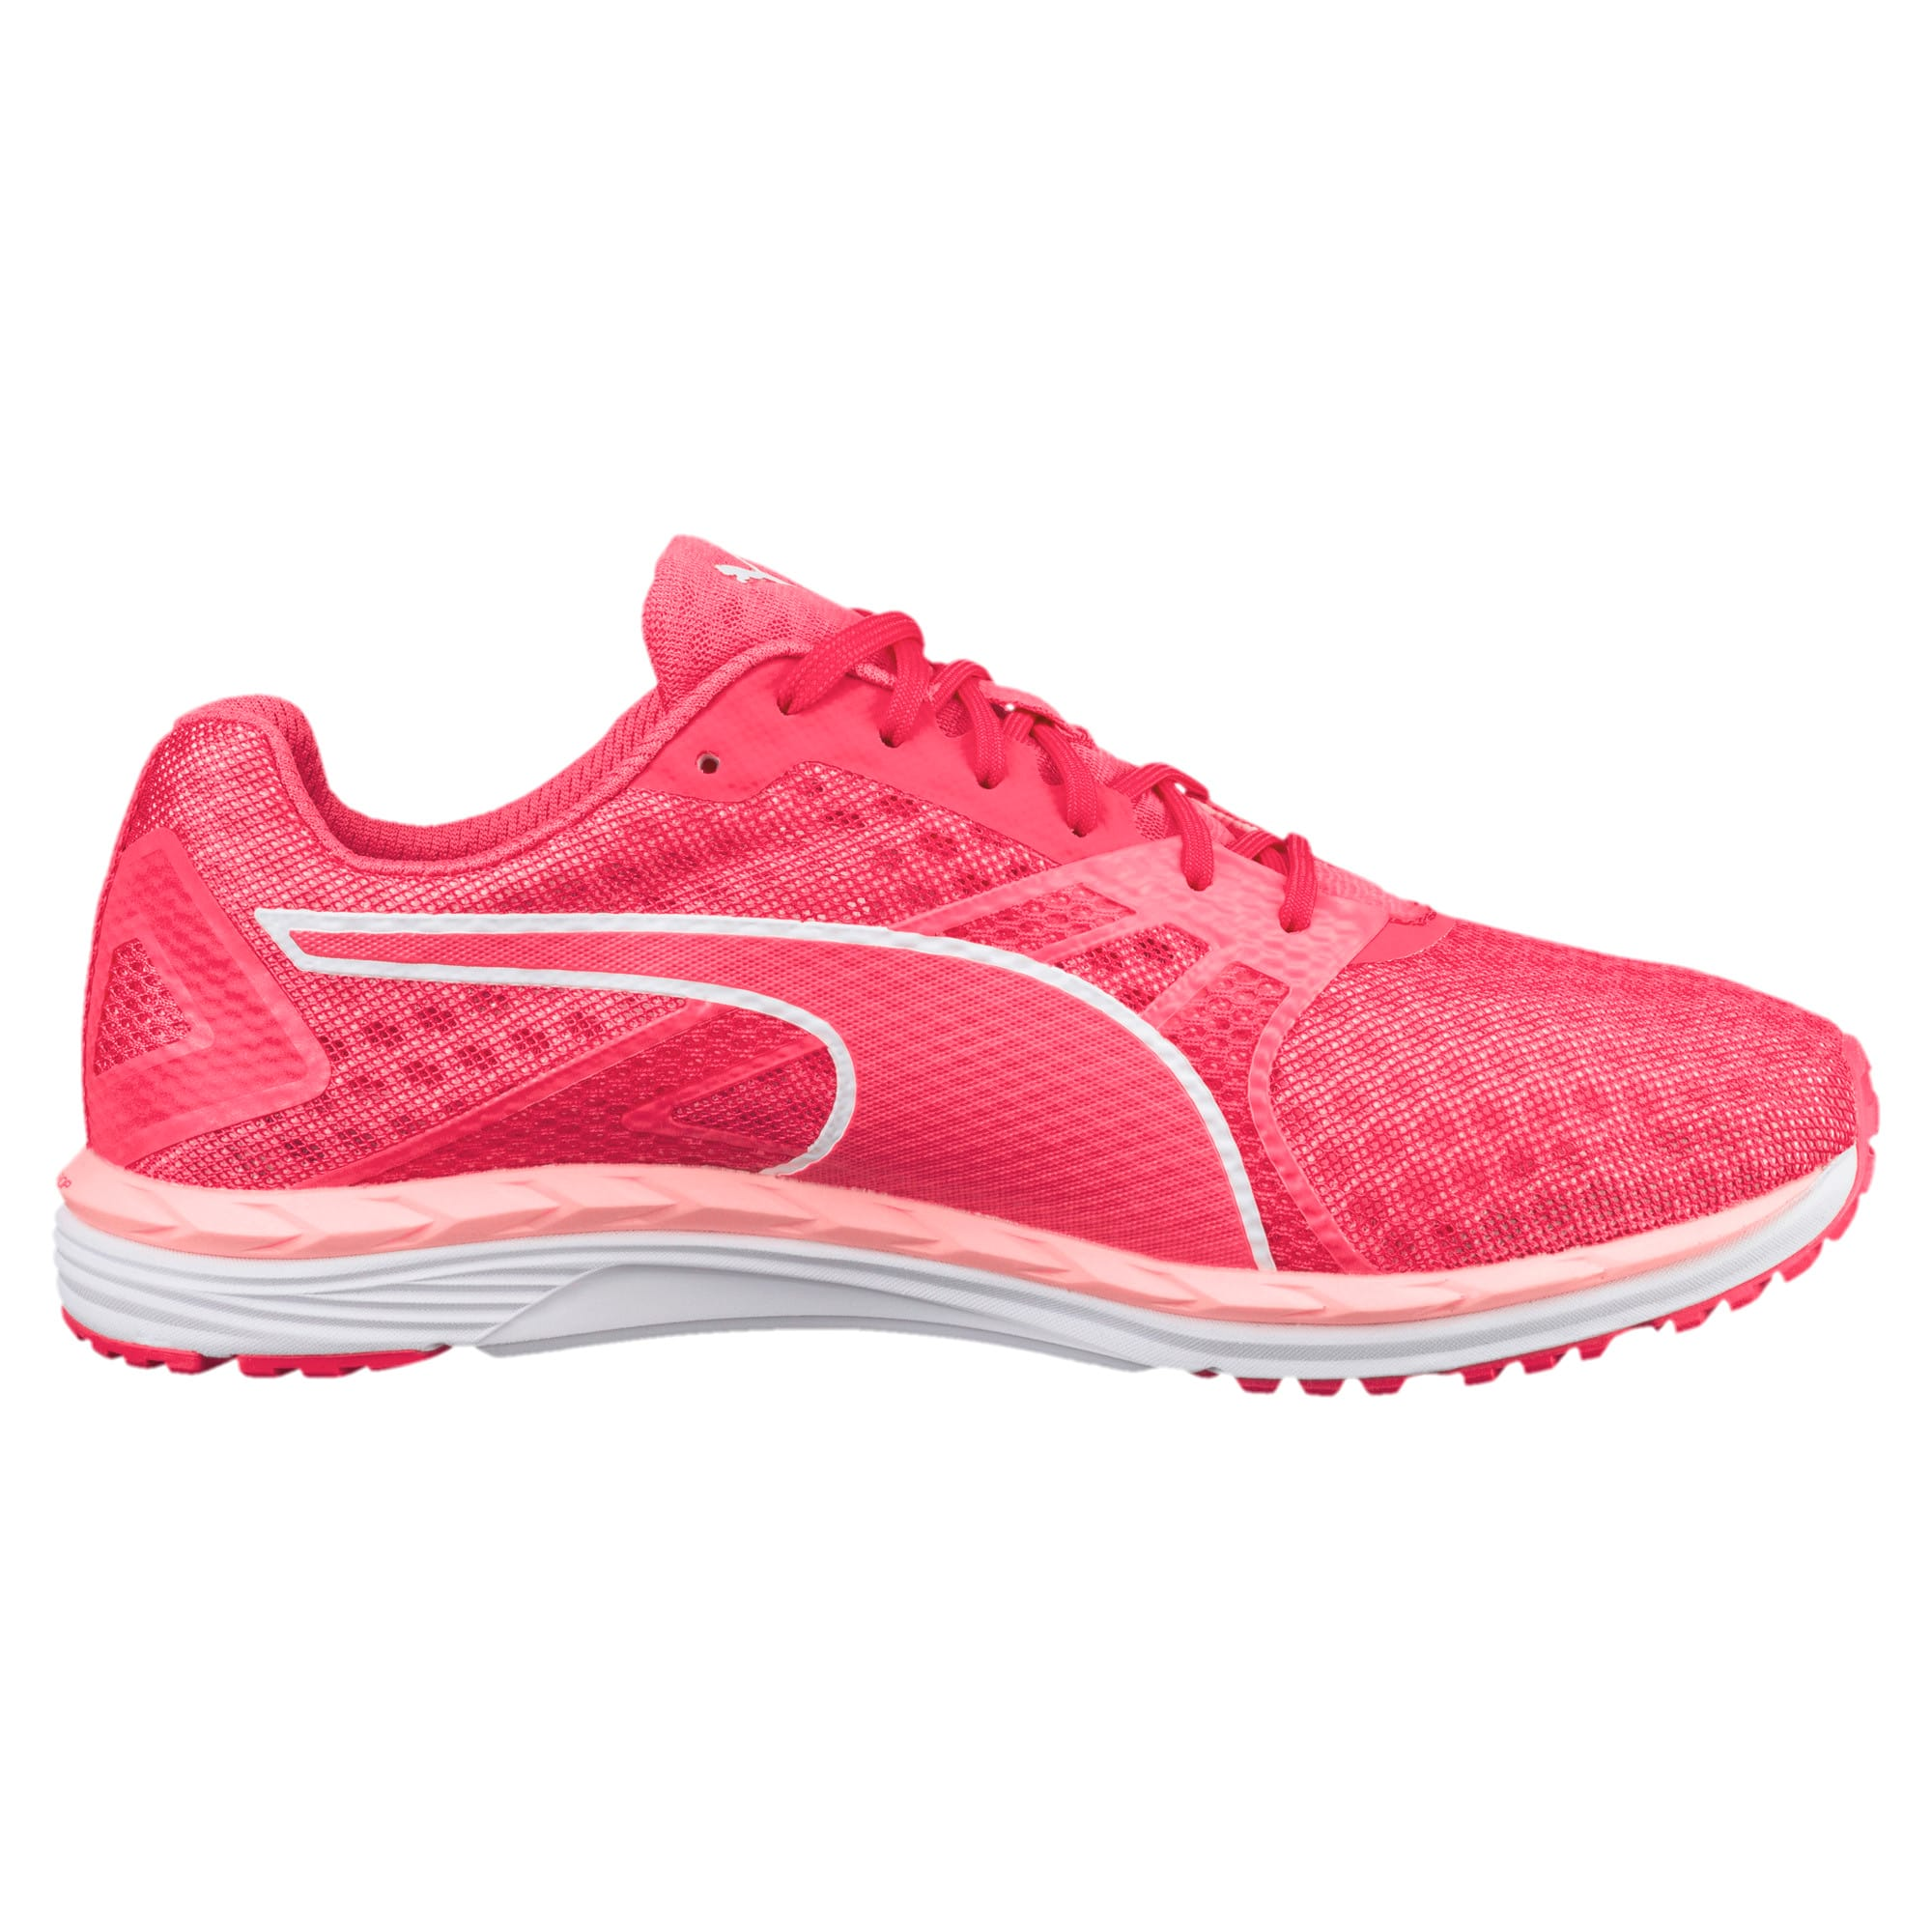 Thumbnail 4 of Speed 300 IGNITE 3 Women's Running Shoes, Pink-Fluo Peach-White, medium-IND